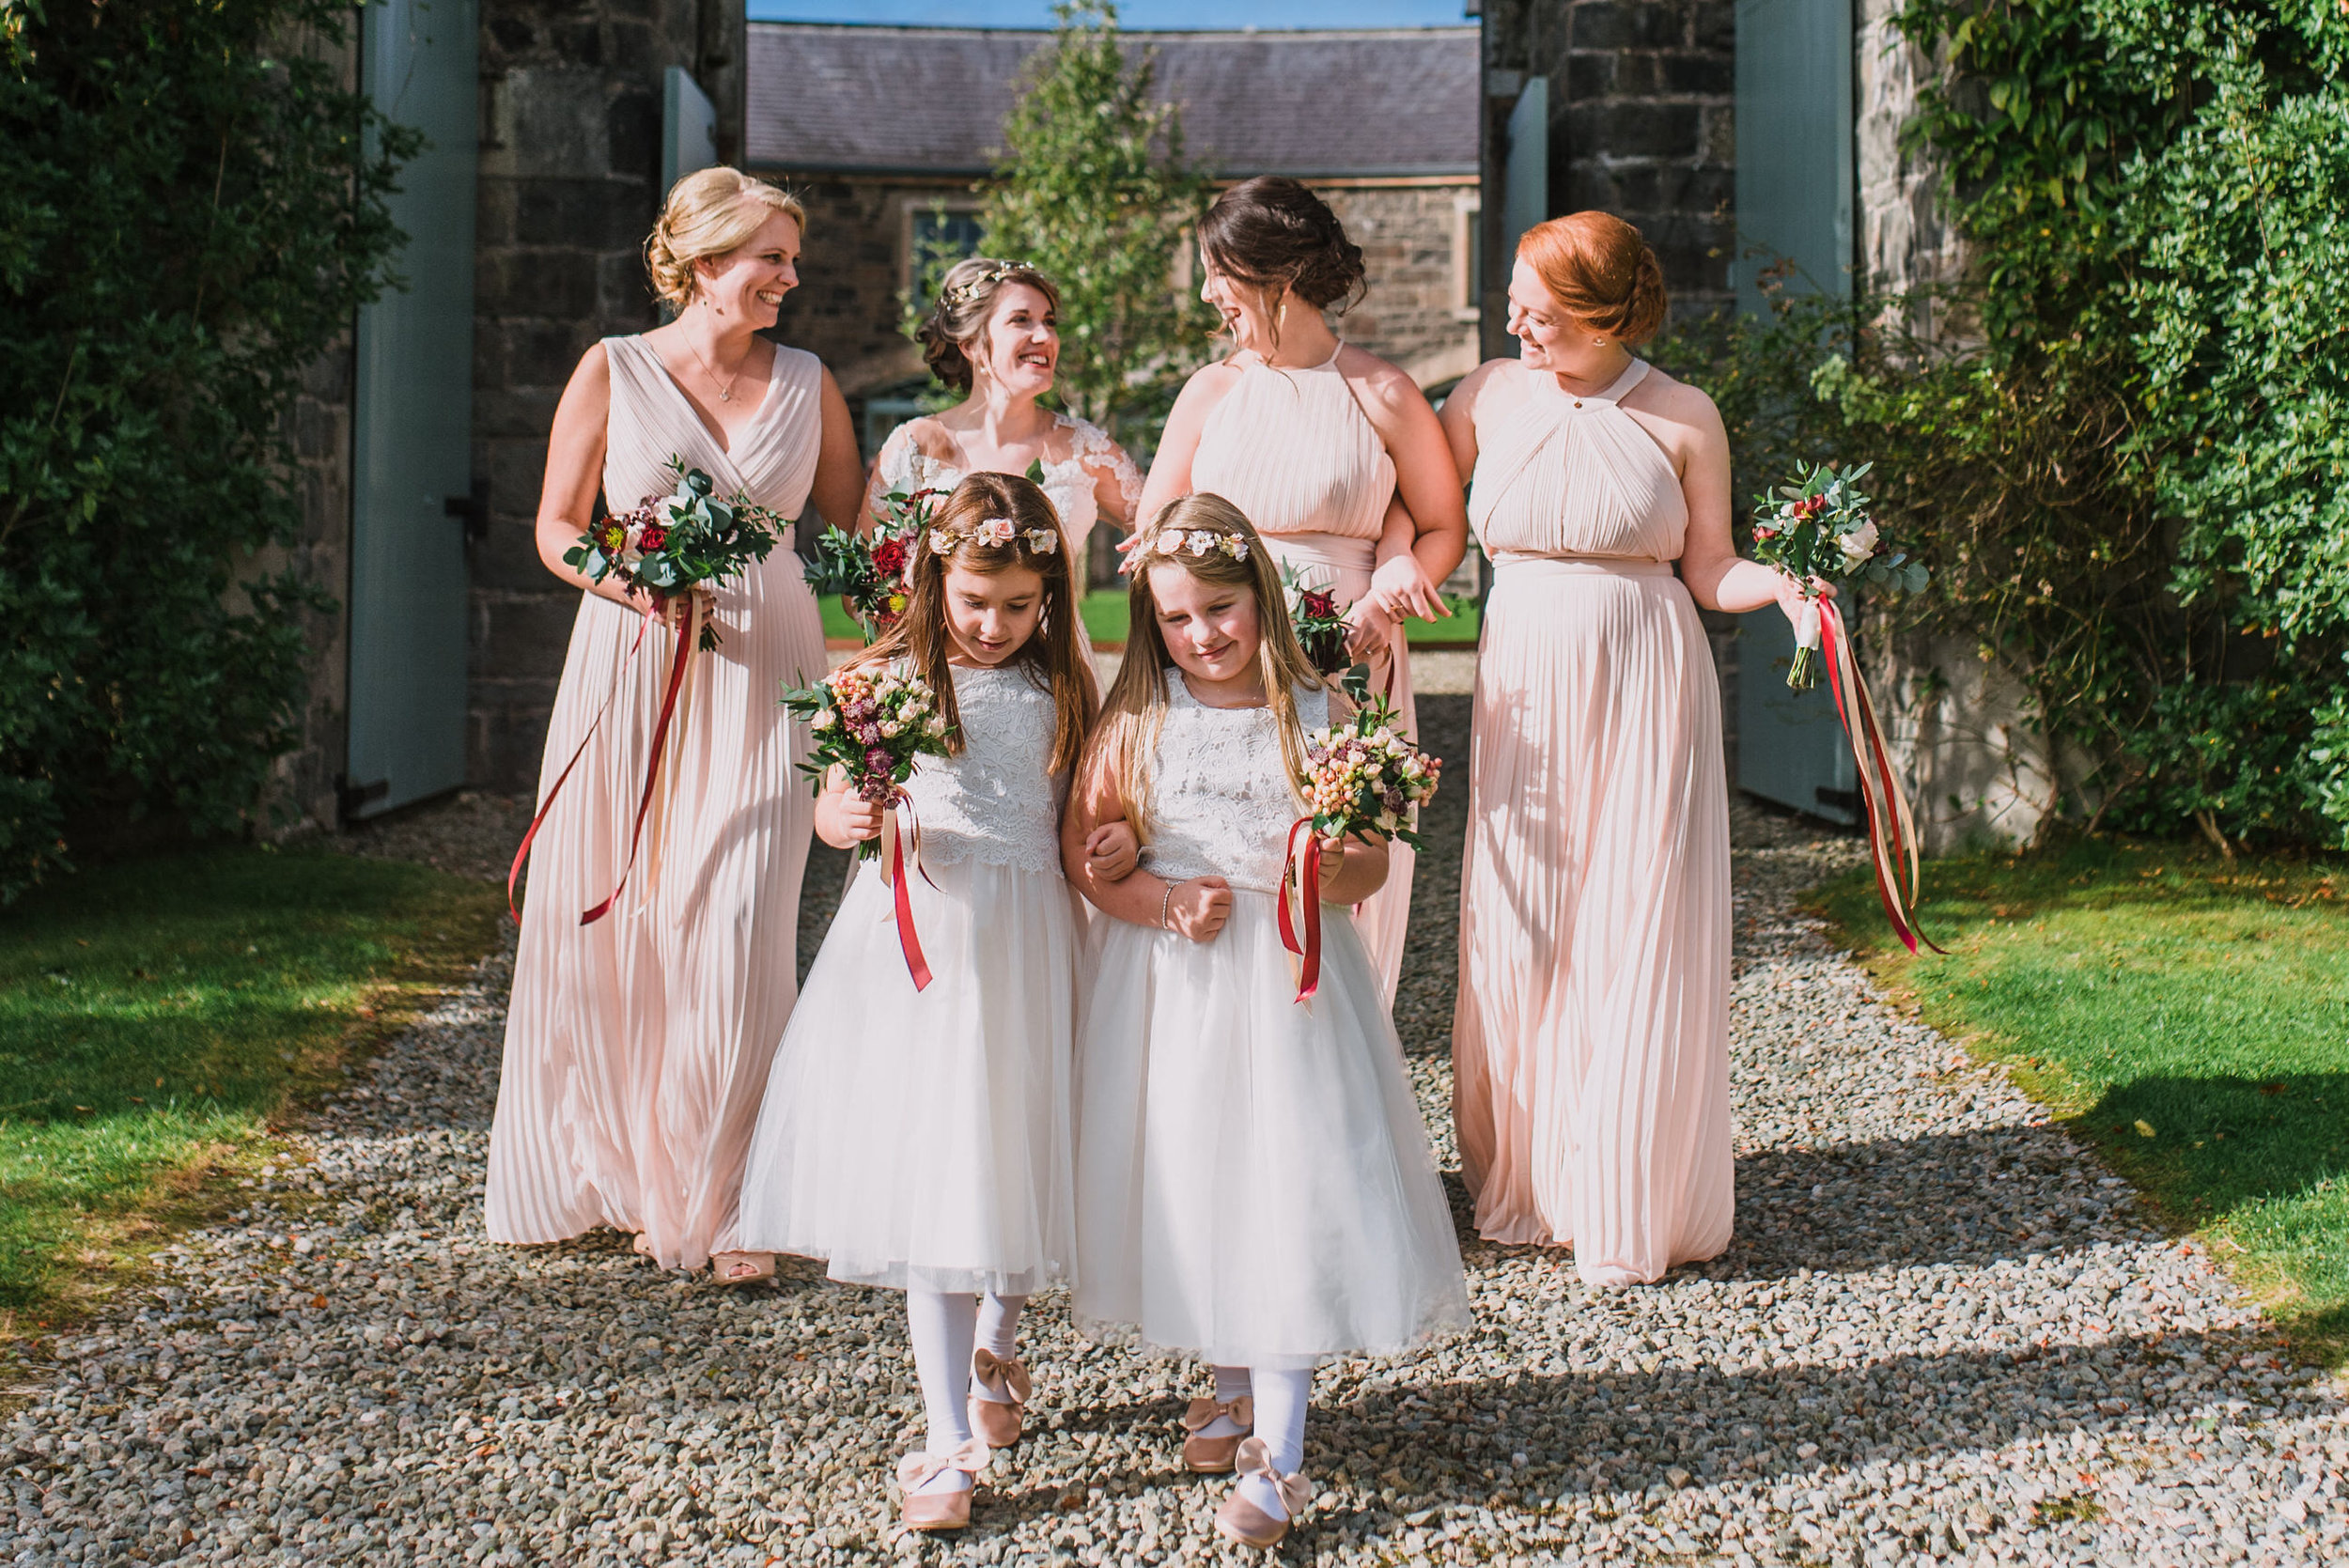 lissanoure castle wedding, northern ireland wedding photographer, romantic northern irish wedding venue, castle wedding ireland, natural wedding photography ni (80).jpg